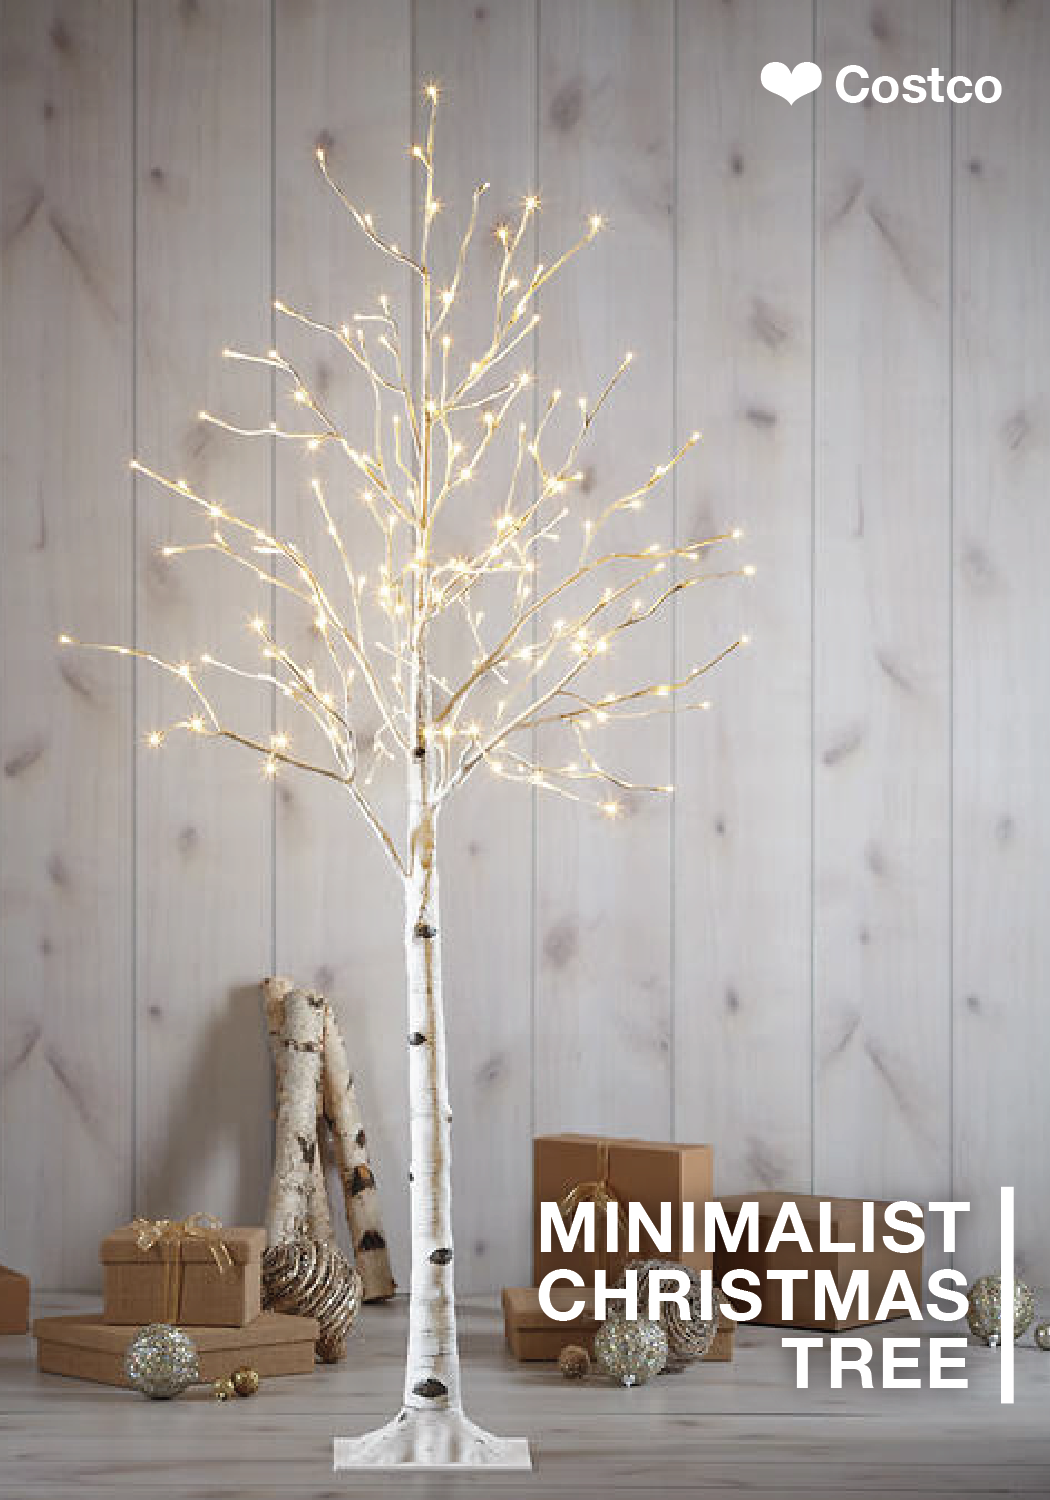 beautiful indoors or outdoors this holiday birch tree from costco is wonderfully modern great as a minimalist option to the traditional christmas tree - Costco Christmas Decorations 2017 Australia